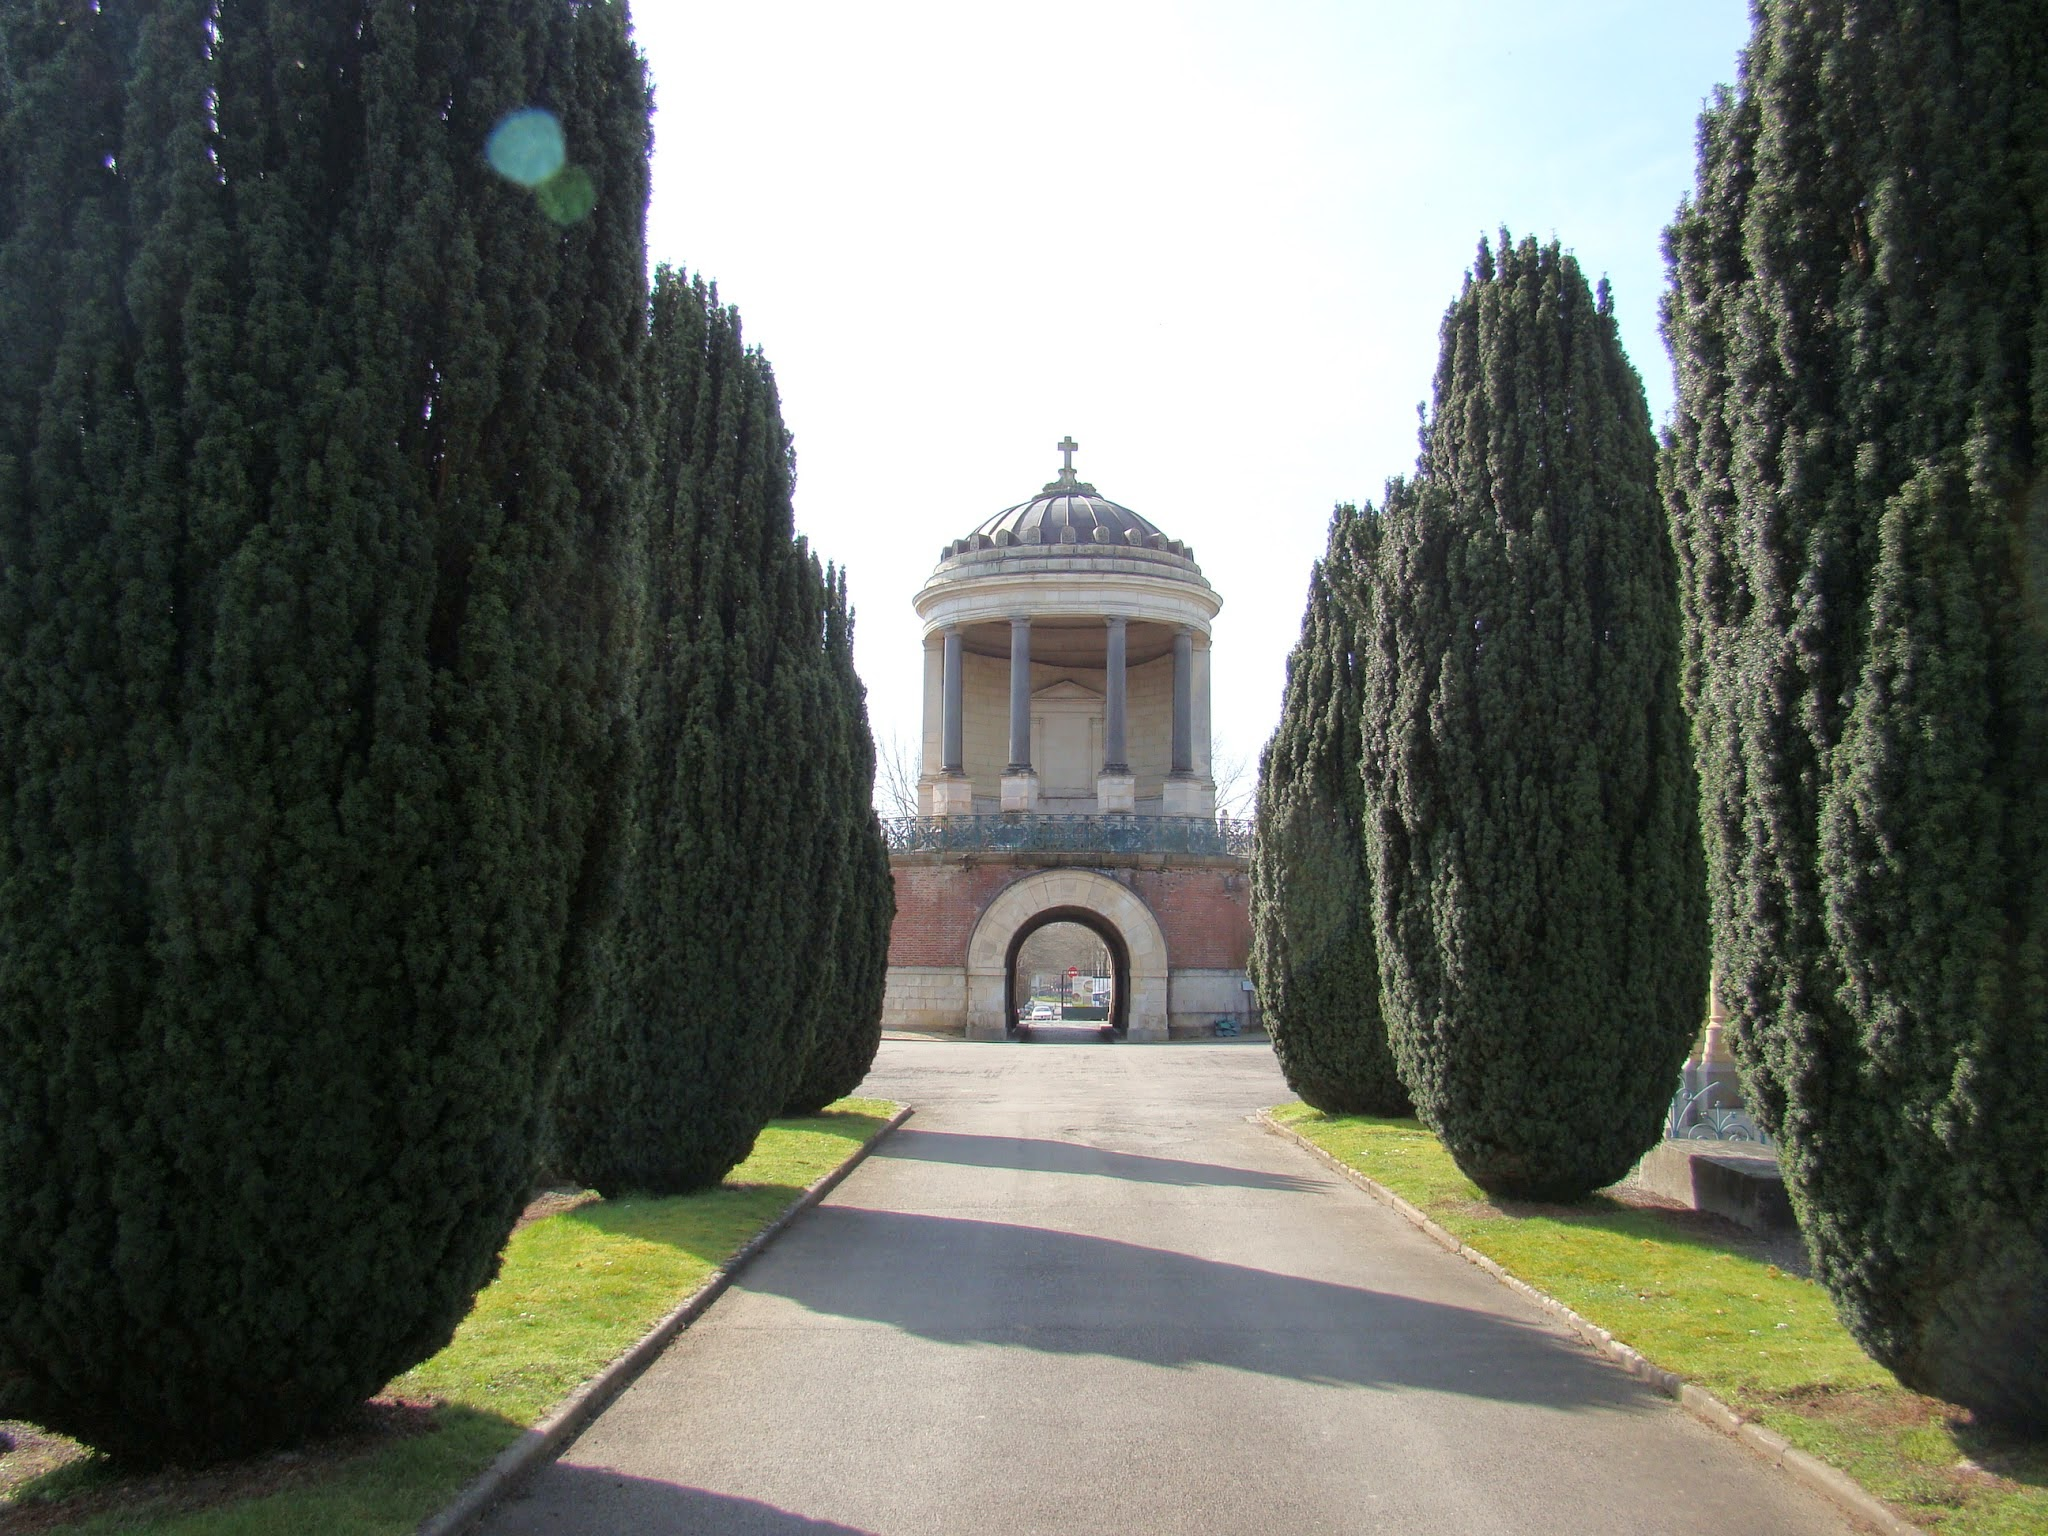 Northern Cemetery (Rennes, France)